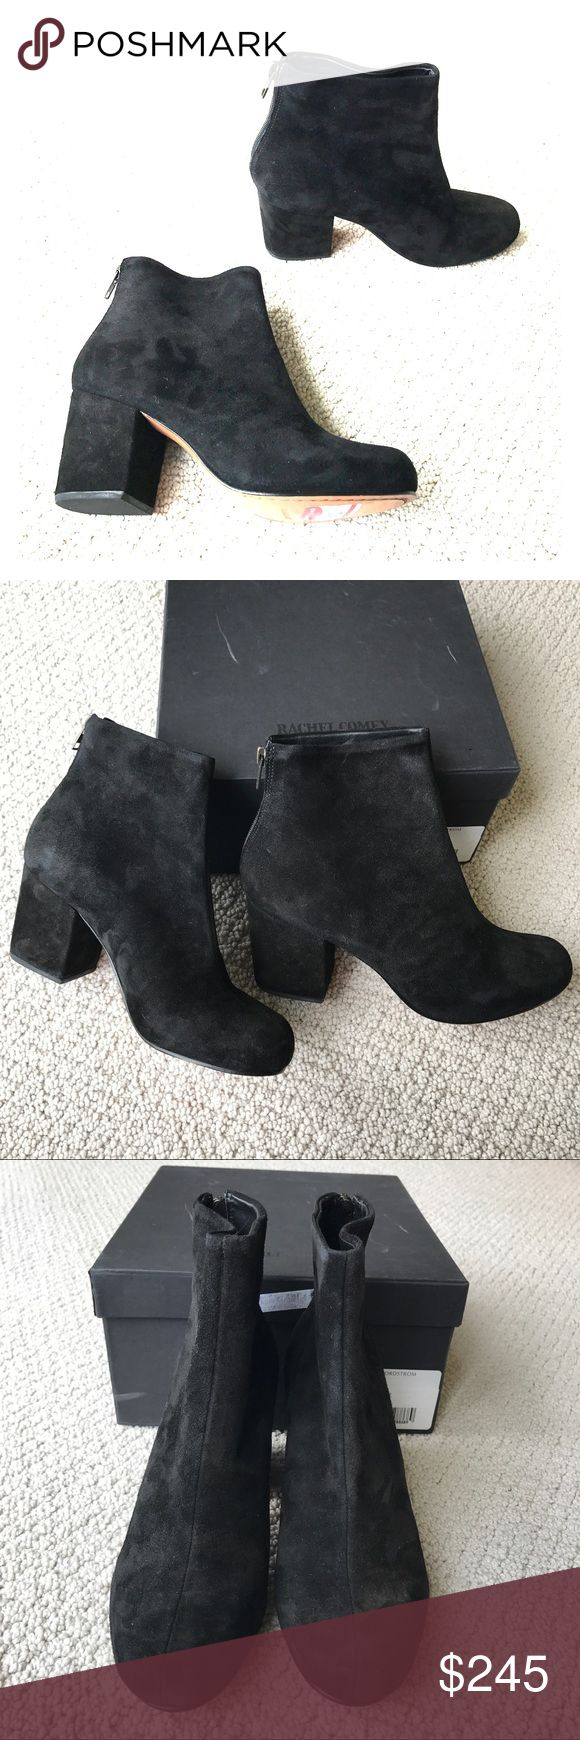 """Rachel Comey- Tilden Black Suede Booties NWT So chic and perfect dressed up or down! Rachel Comey """"Tilden"""" black suede booties. A mod ankle boot constructed from rich suede and set on a chunky wrapped heel features an exposed back zip. 3"""" heel (size 7.5). 4 1/2"""" boot shaft. Back zip closure. Leather upper, lining and sole. Shoes are new with tags. Includes box from Nordstrom Rack and a dust bag (Joie dust bag). No trades please! Rachel Comey Shoes Ankle Boots & Booties"""